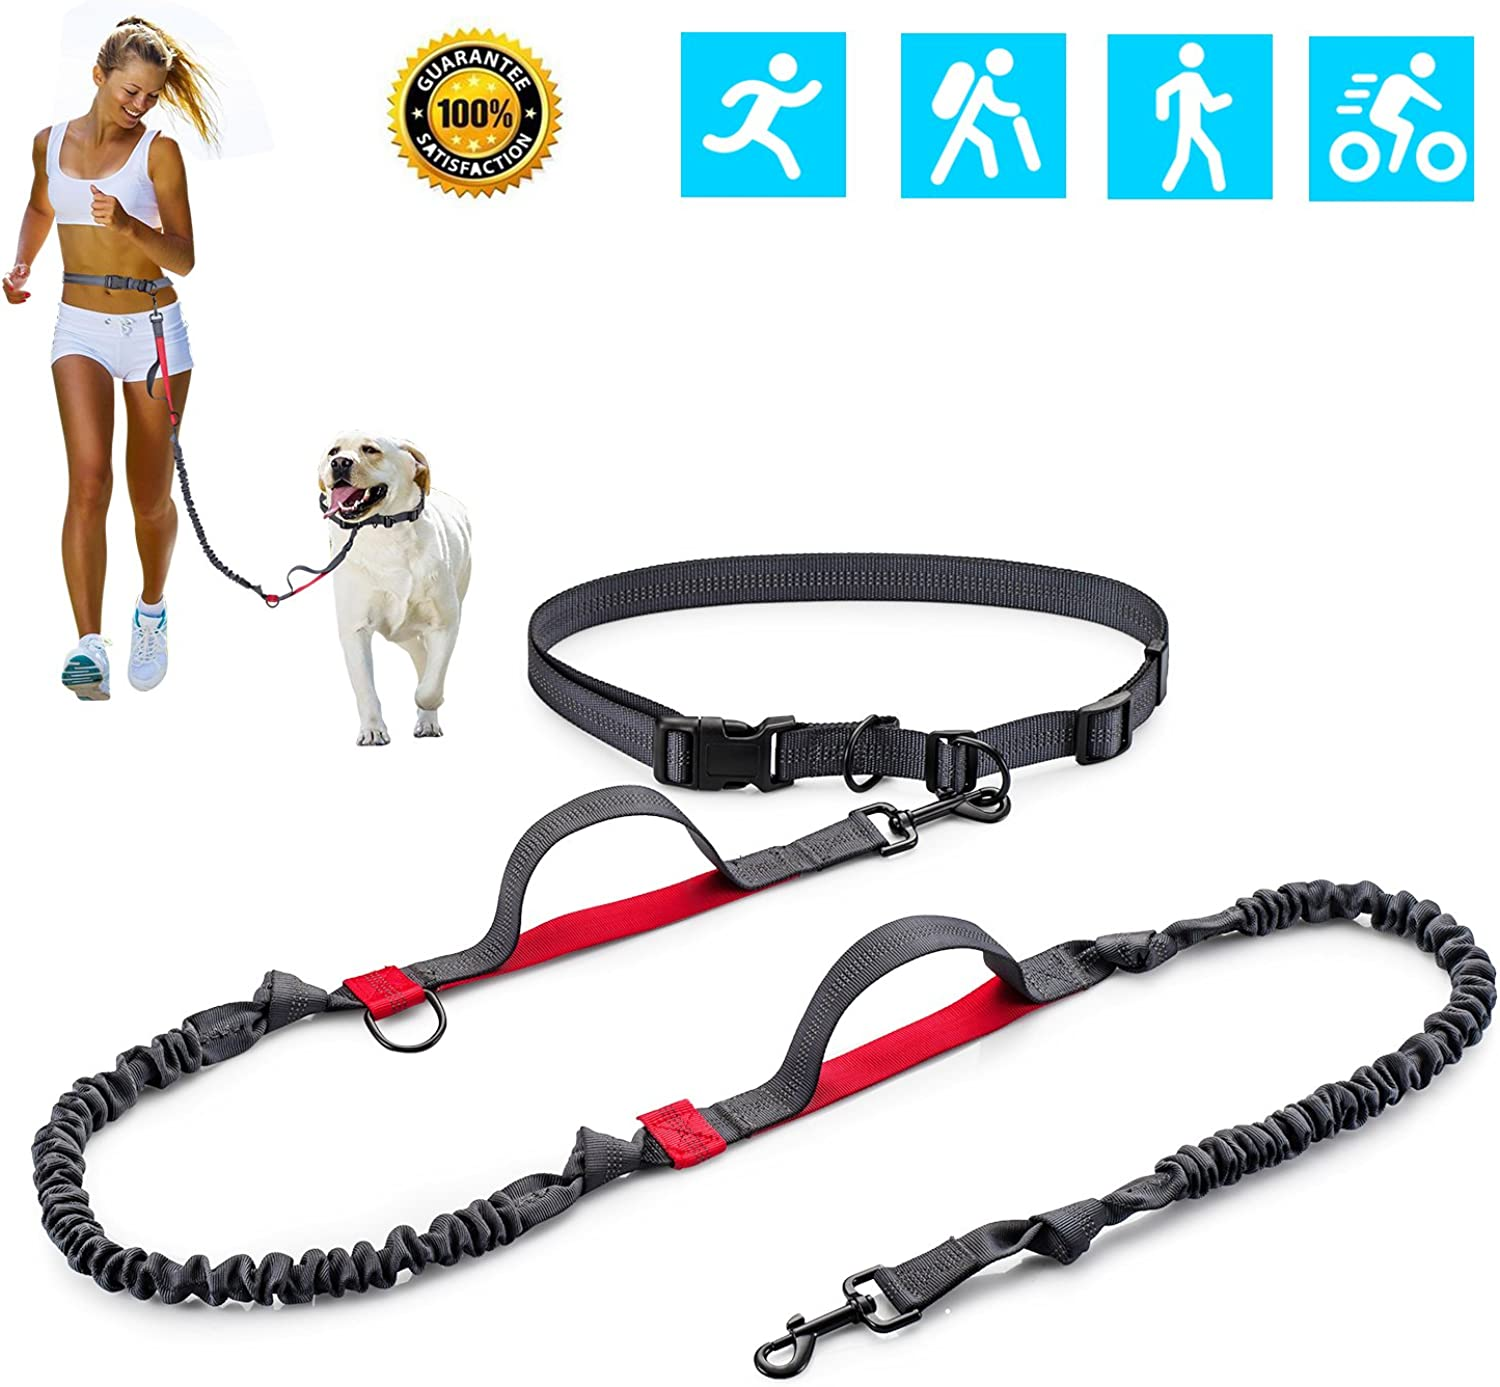 DODODO Hands Free Dog Leash, Retractable Leash with Dual Bungees for up to 160 lbs Large Dogs (Red)